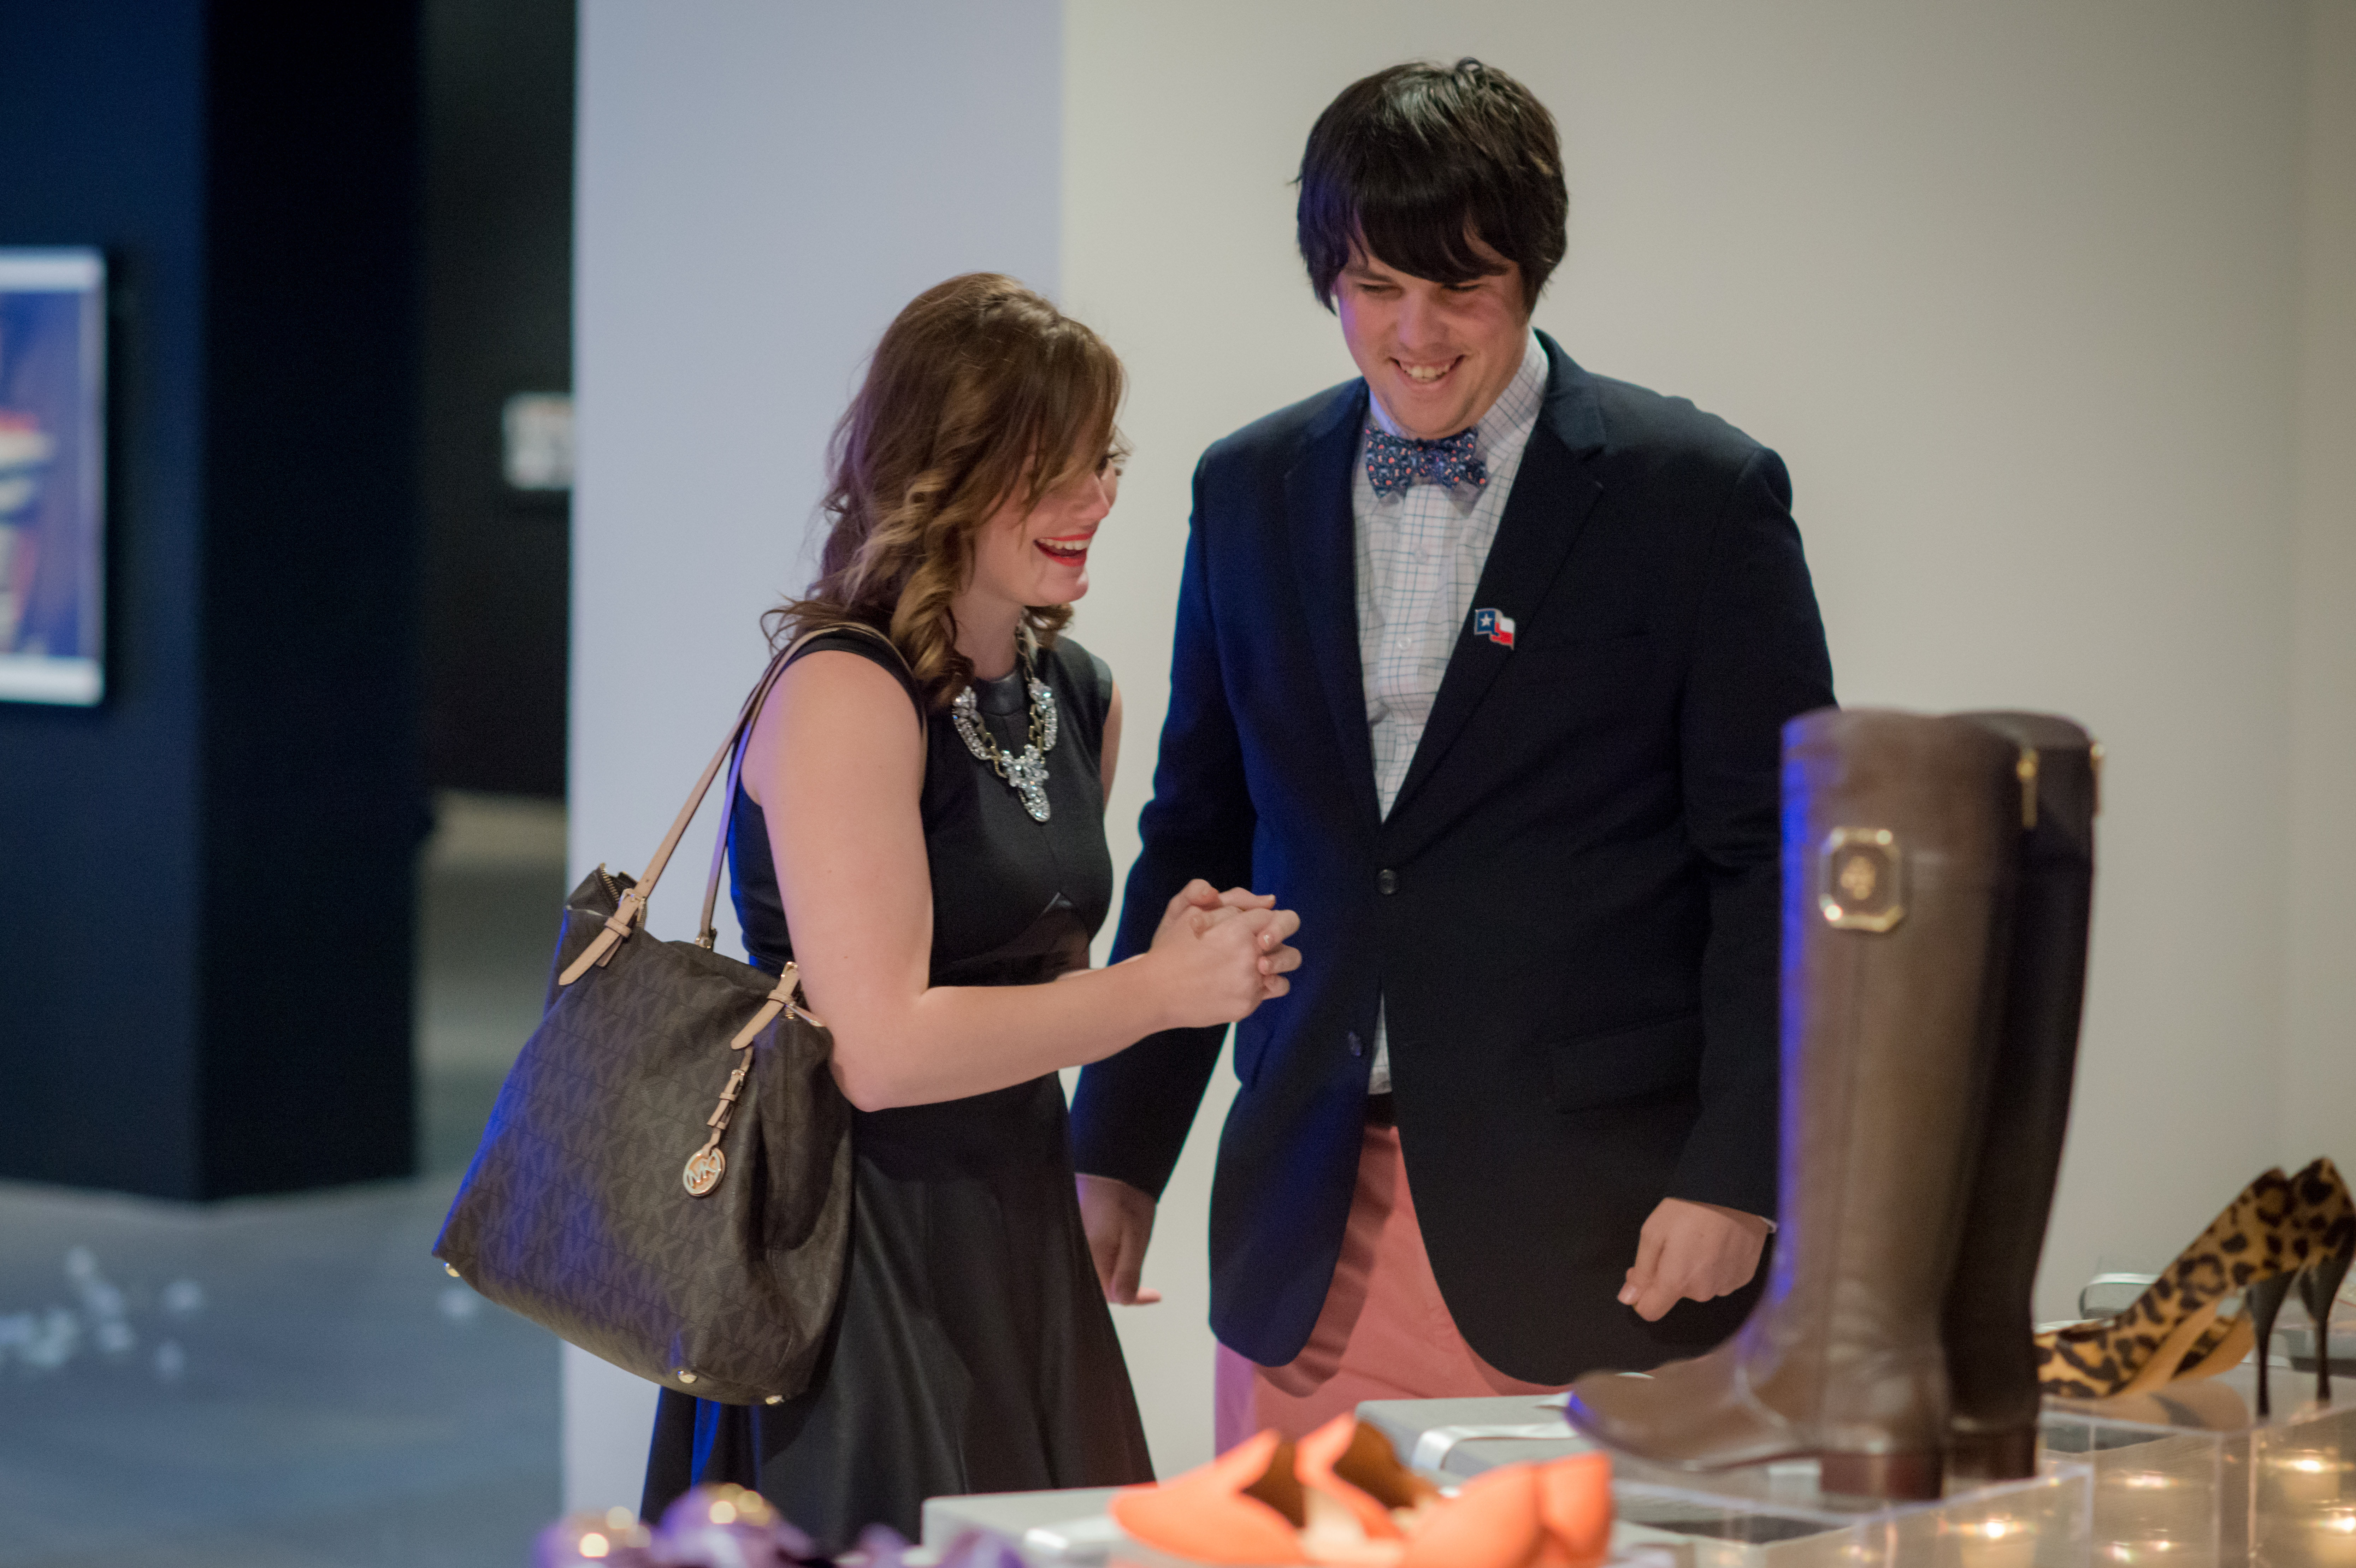 Image 5 of Kelcie and Bo | A Shoe Lover's Dream Proposal